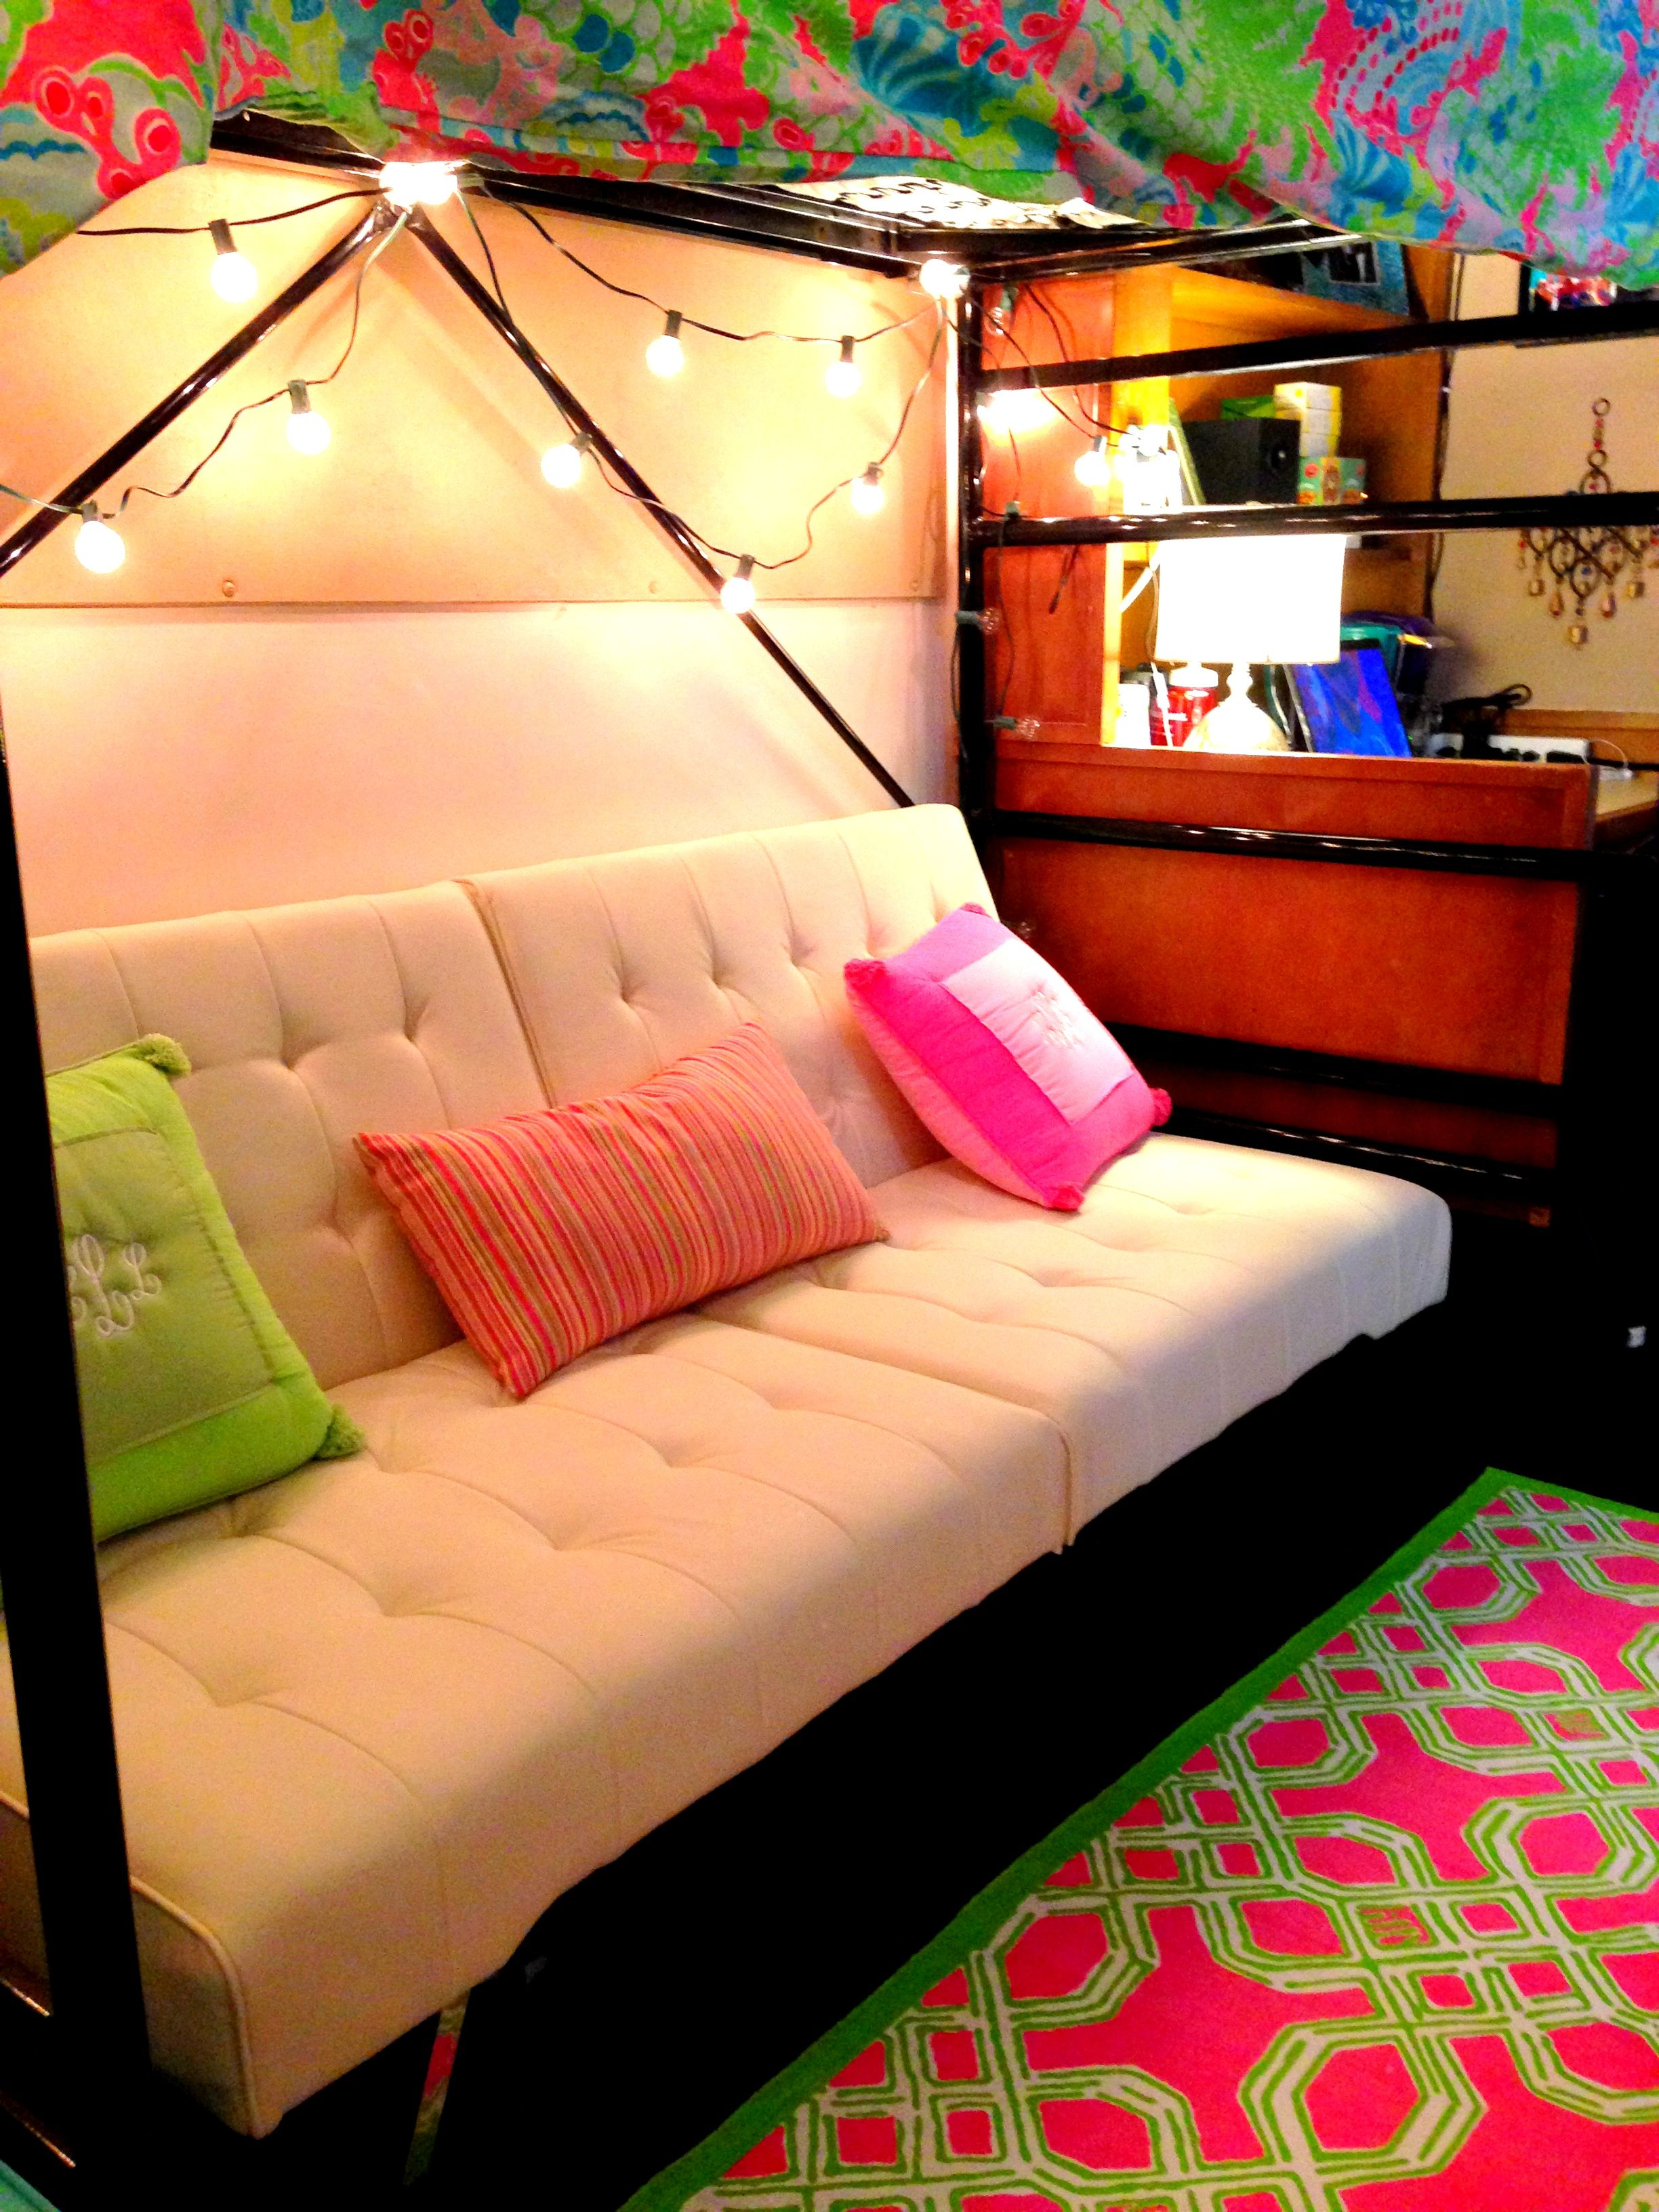 Awesome Futon Set Up Underneath Bunked Dorm Bed Room Inspiration